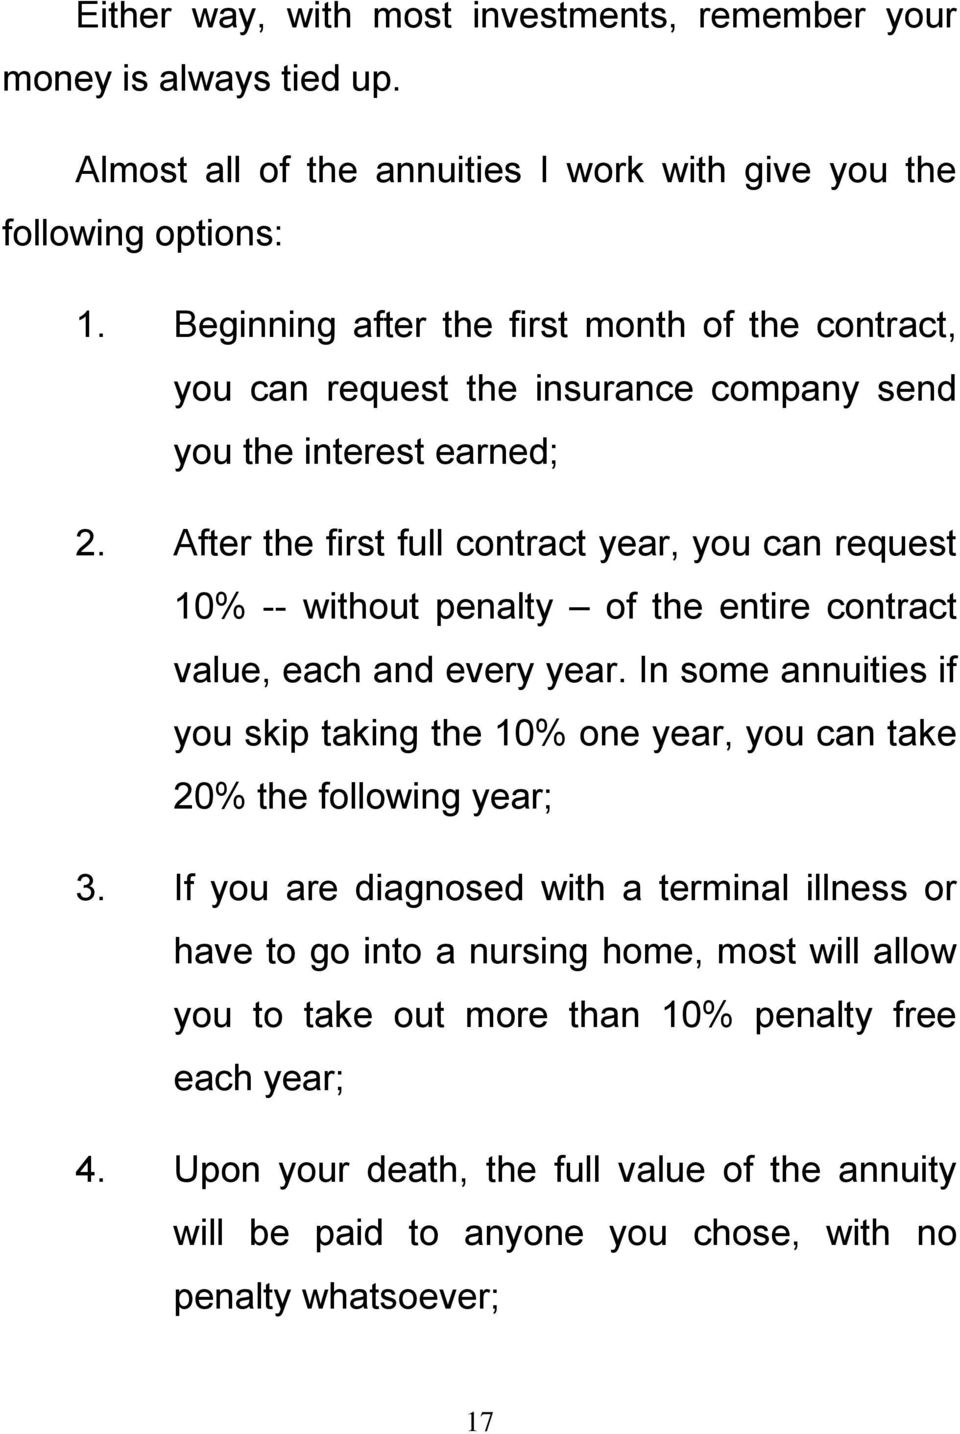 After the first full contract year, you can request 10% -- without penalty of the entire contract value, each and every year.